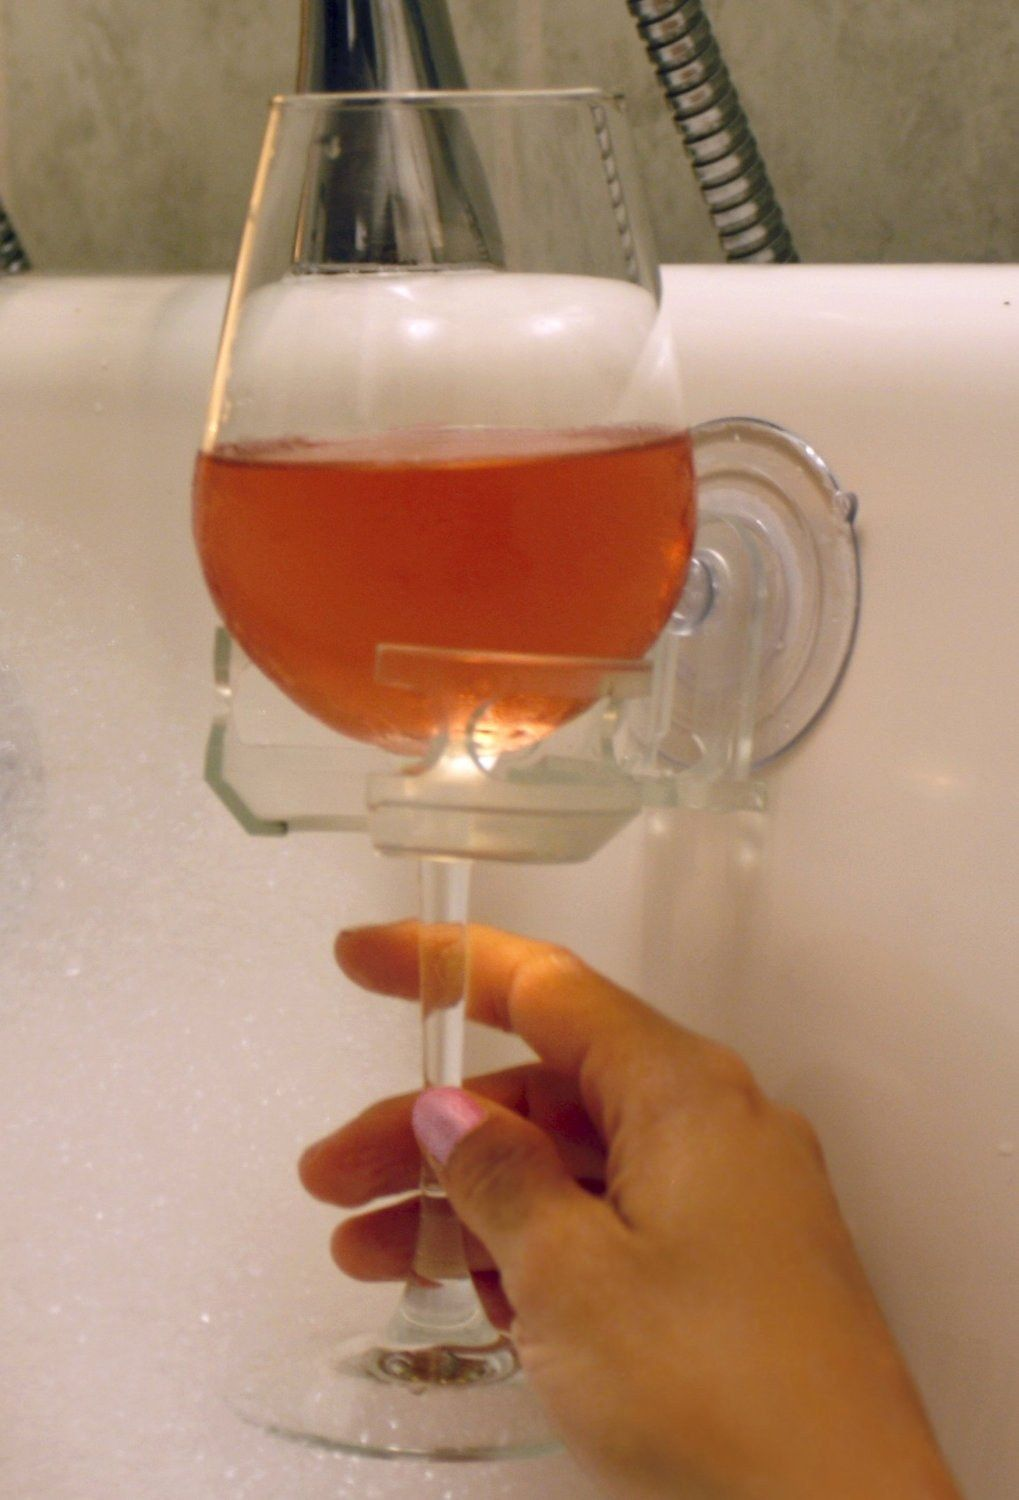 This Fabulous And Functional Bathtub Wine Glass Holder Shower Beer Wine Glass Holder Bathroom Accessories